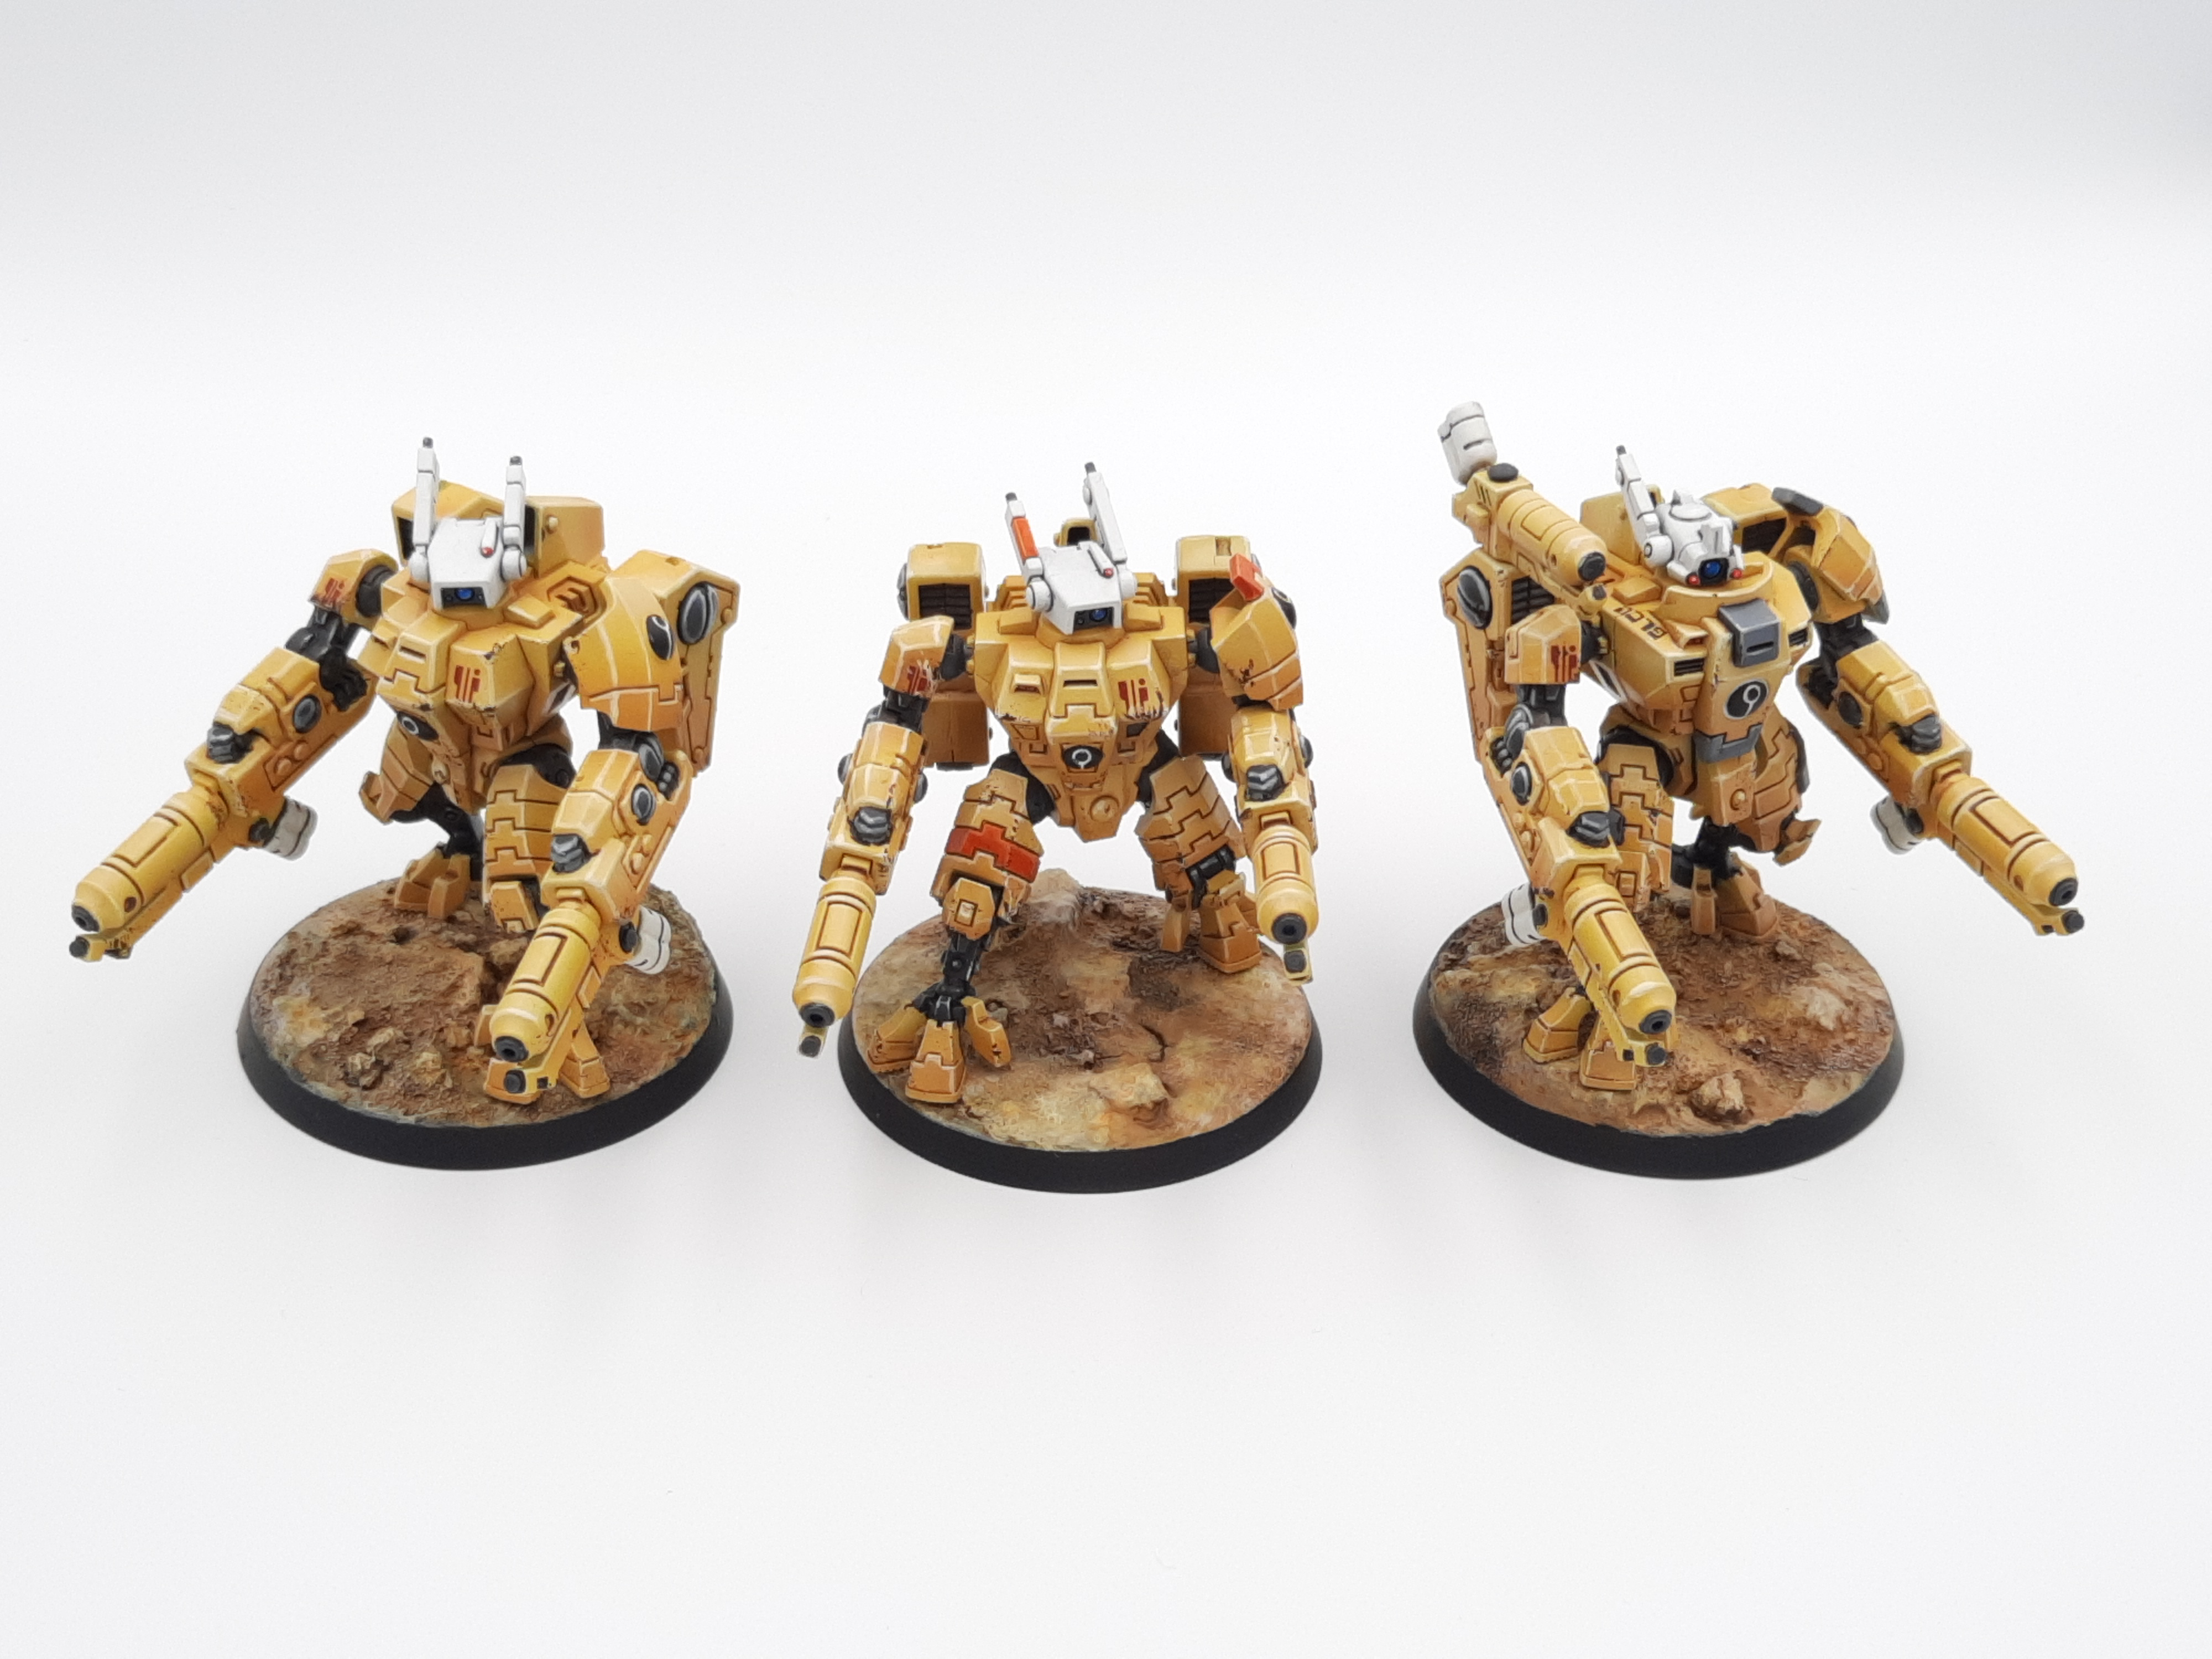 A set of three model mech suits, with crisply outlined tan armour.